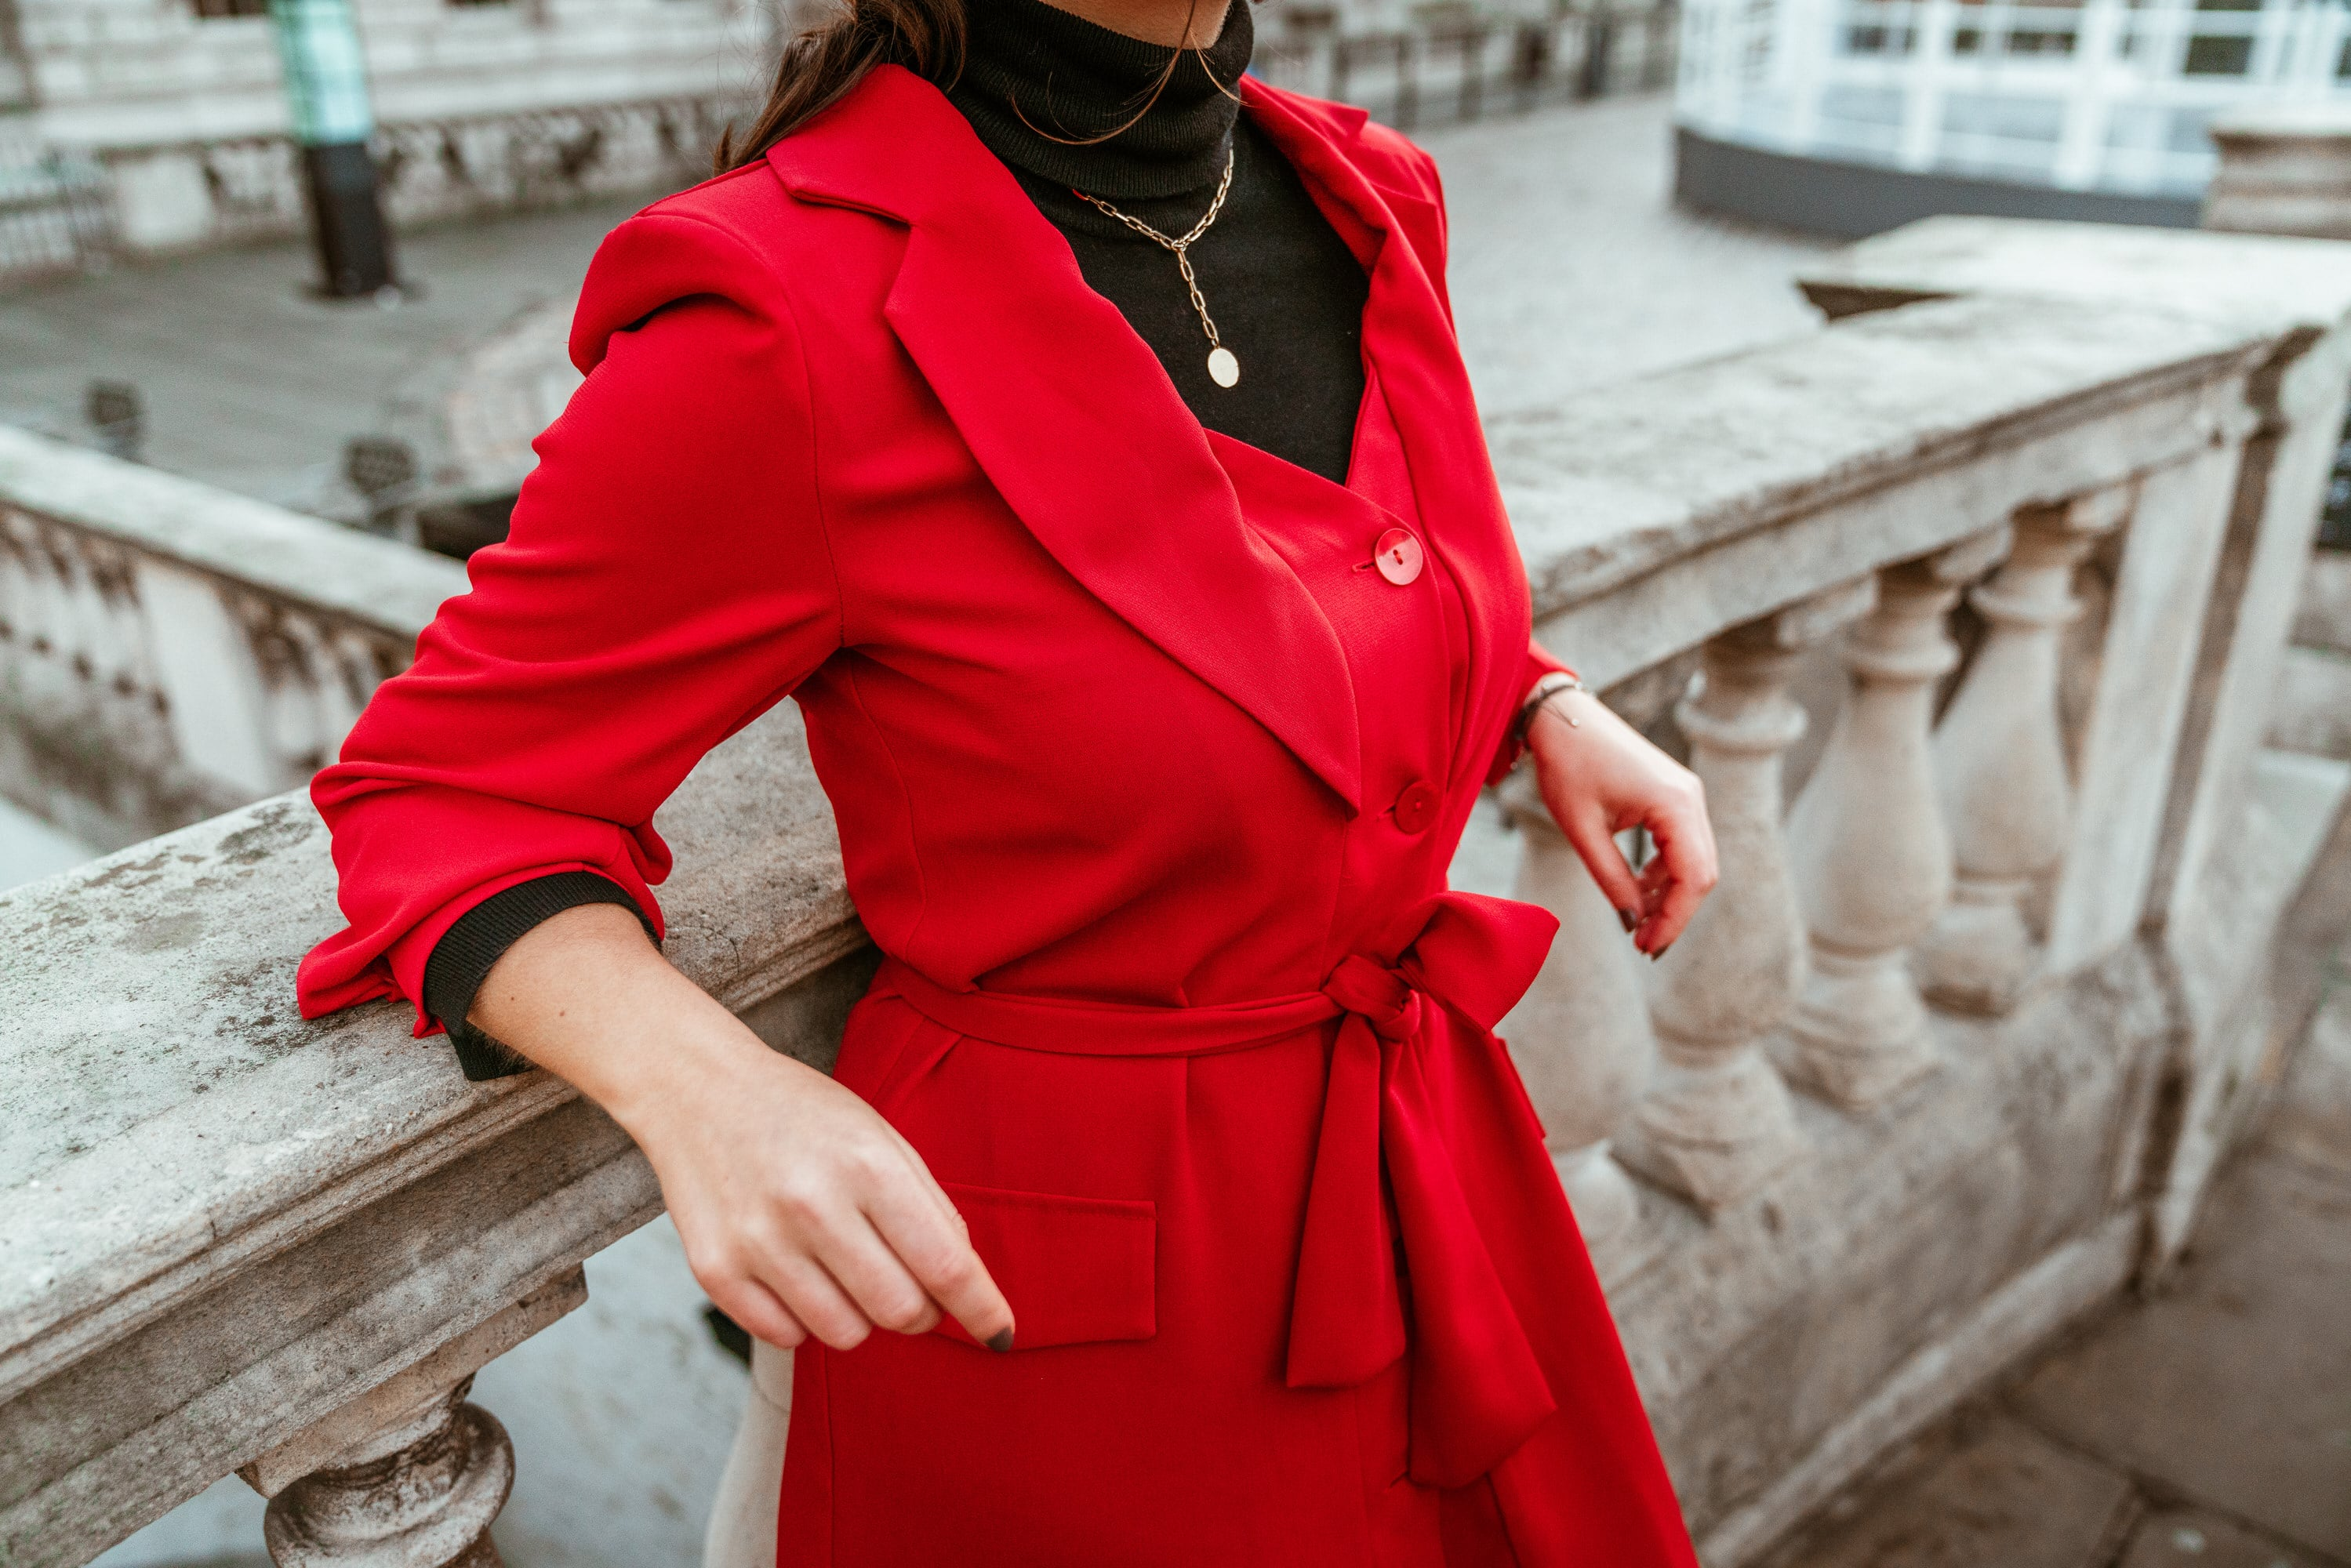 Sophie Trench-Coat by Sienna wore by Marisa Oliveira from Arara Pintada